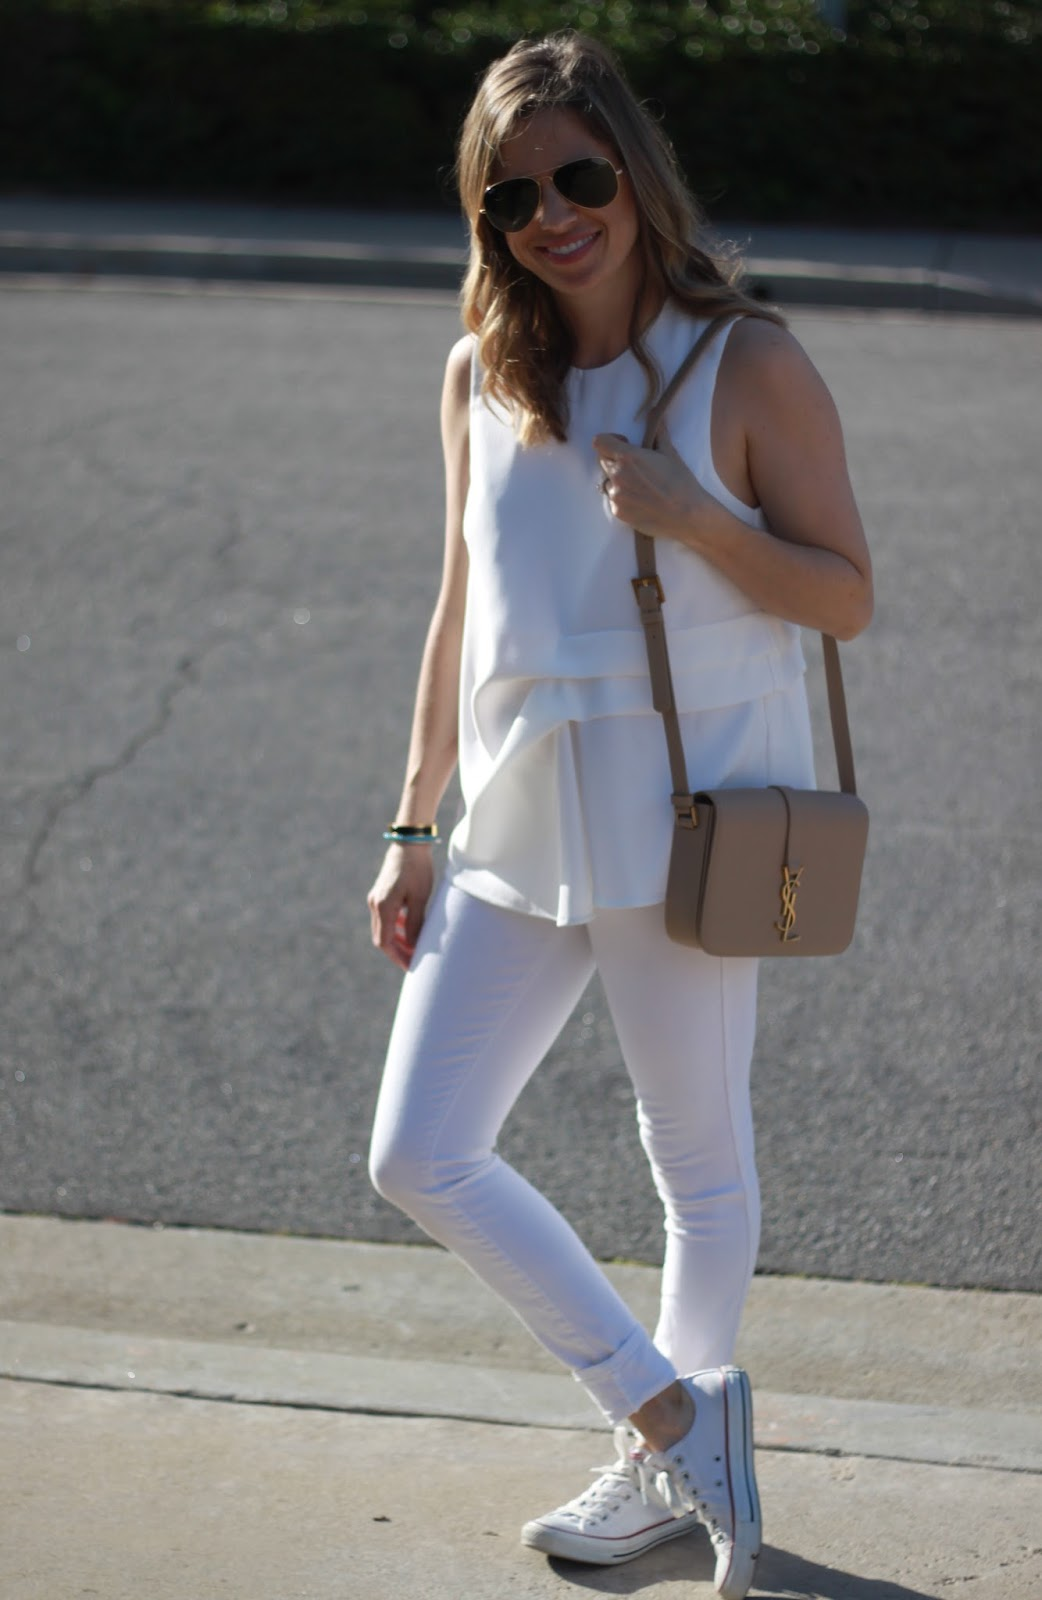 white top, jeans and shoes